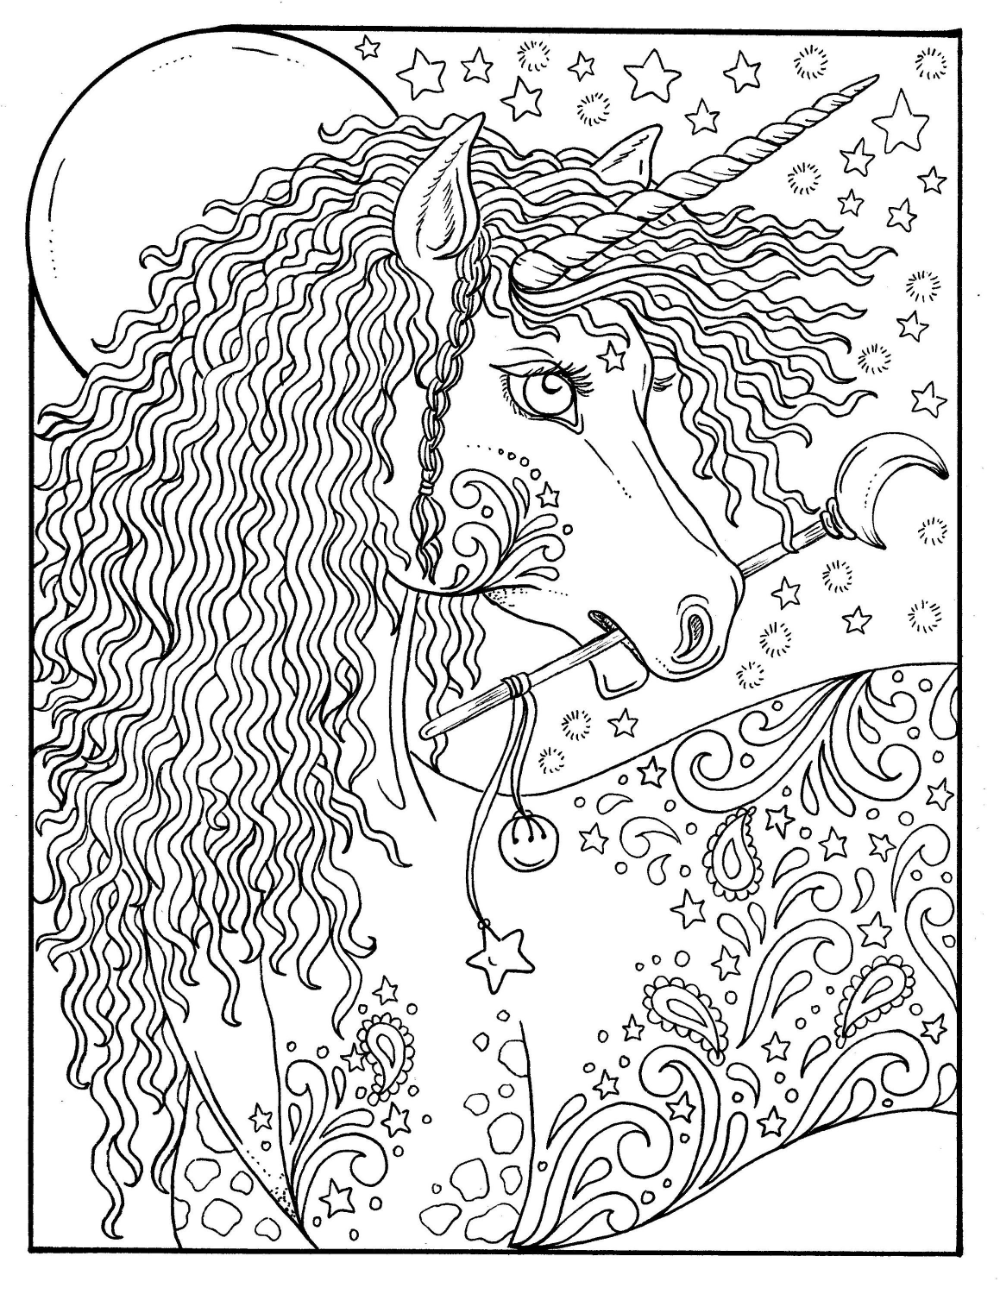 Digital Coloring Book Unicorn Dreams Magical Fantasy Etsy Unicorn Coloring Pages Horse Coloring Pages Coloring Pages